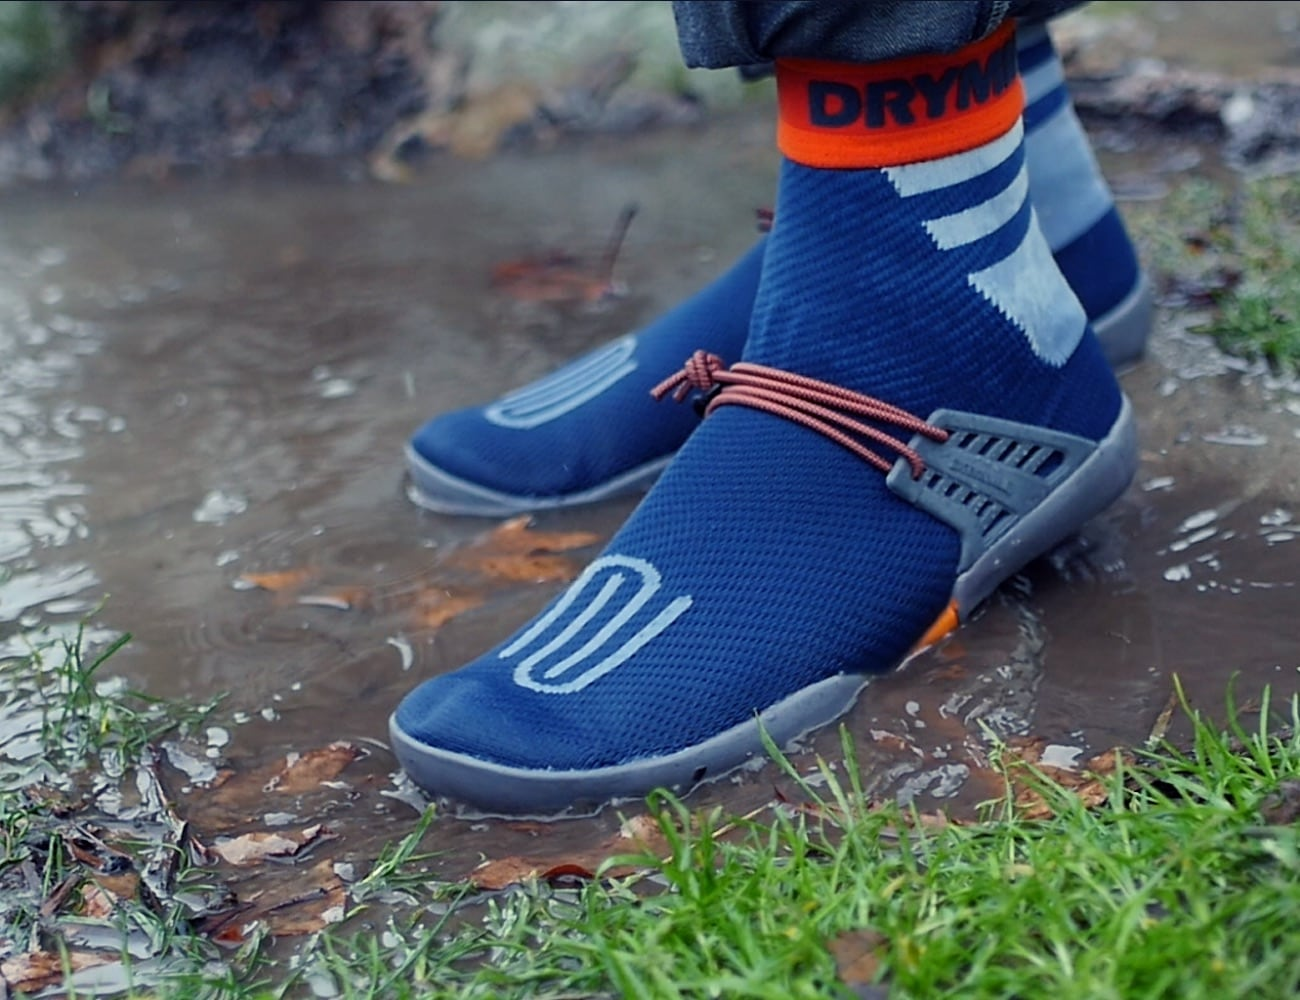 DRYMILE Packable Waterproof Sock Shoes keep your feet protected